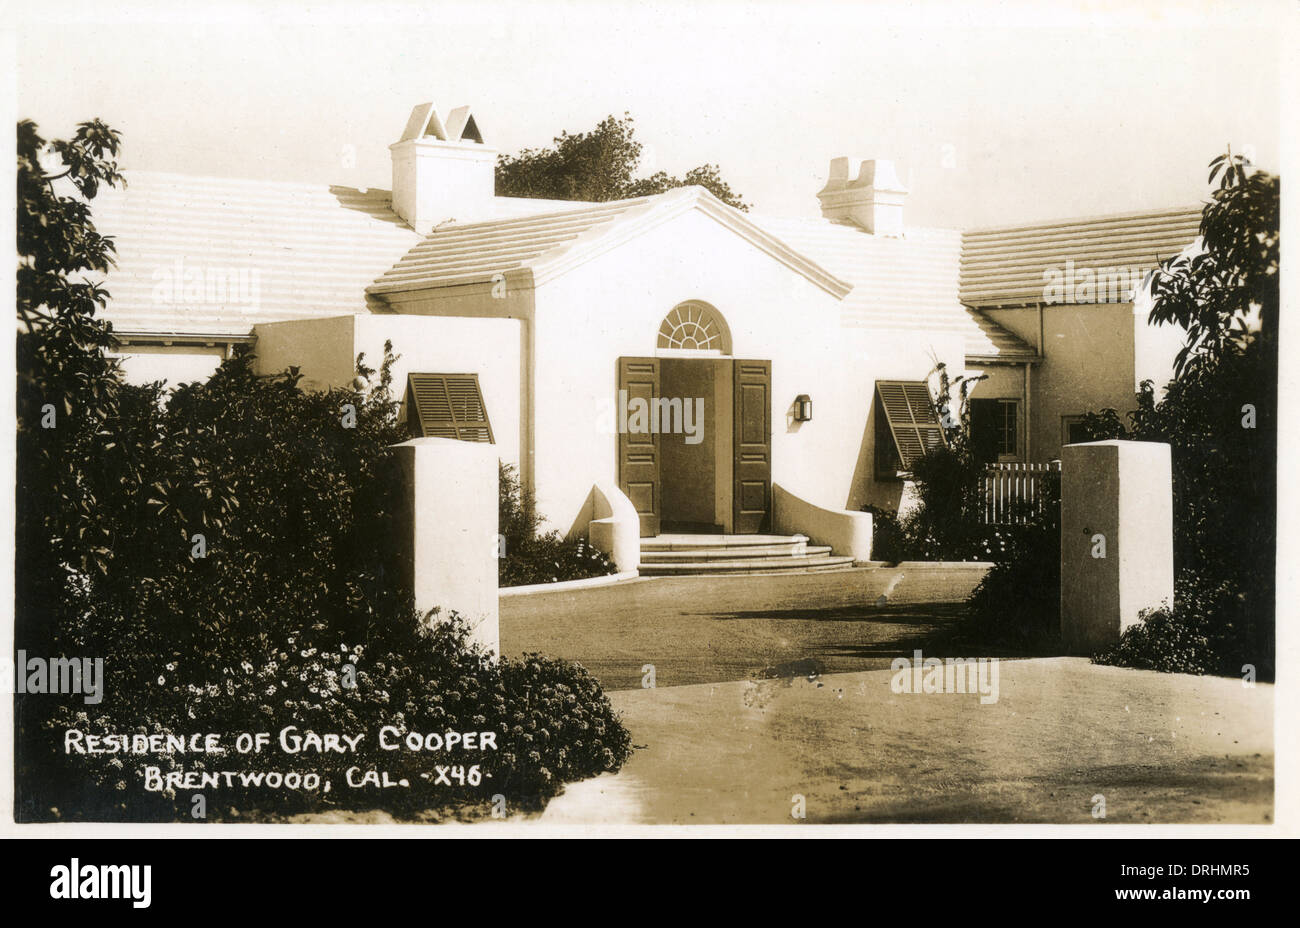 Residence of Gary Cooper, Brentwood, California, USA - Stock Image